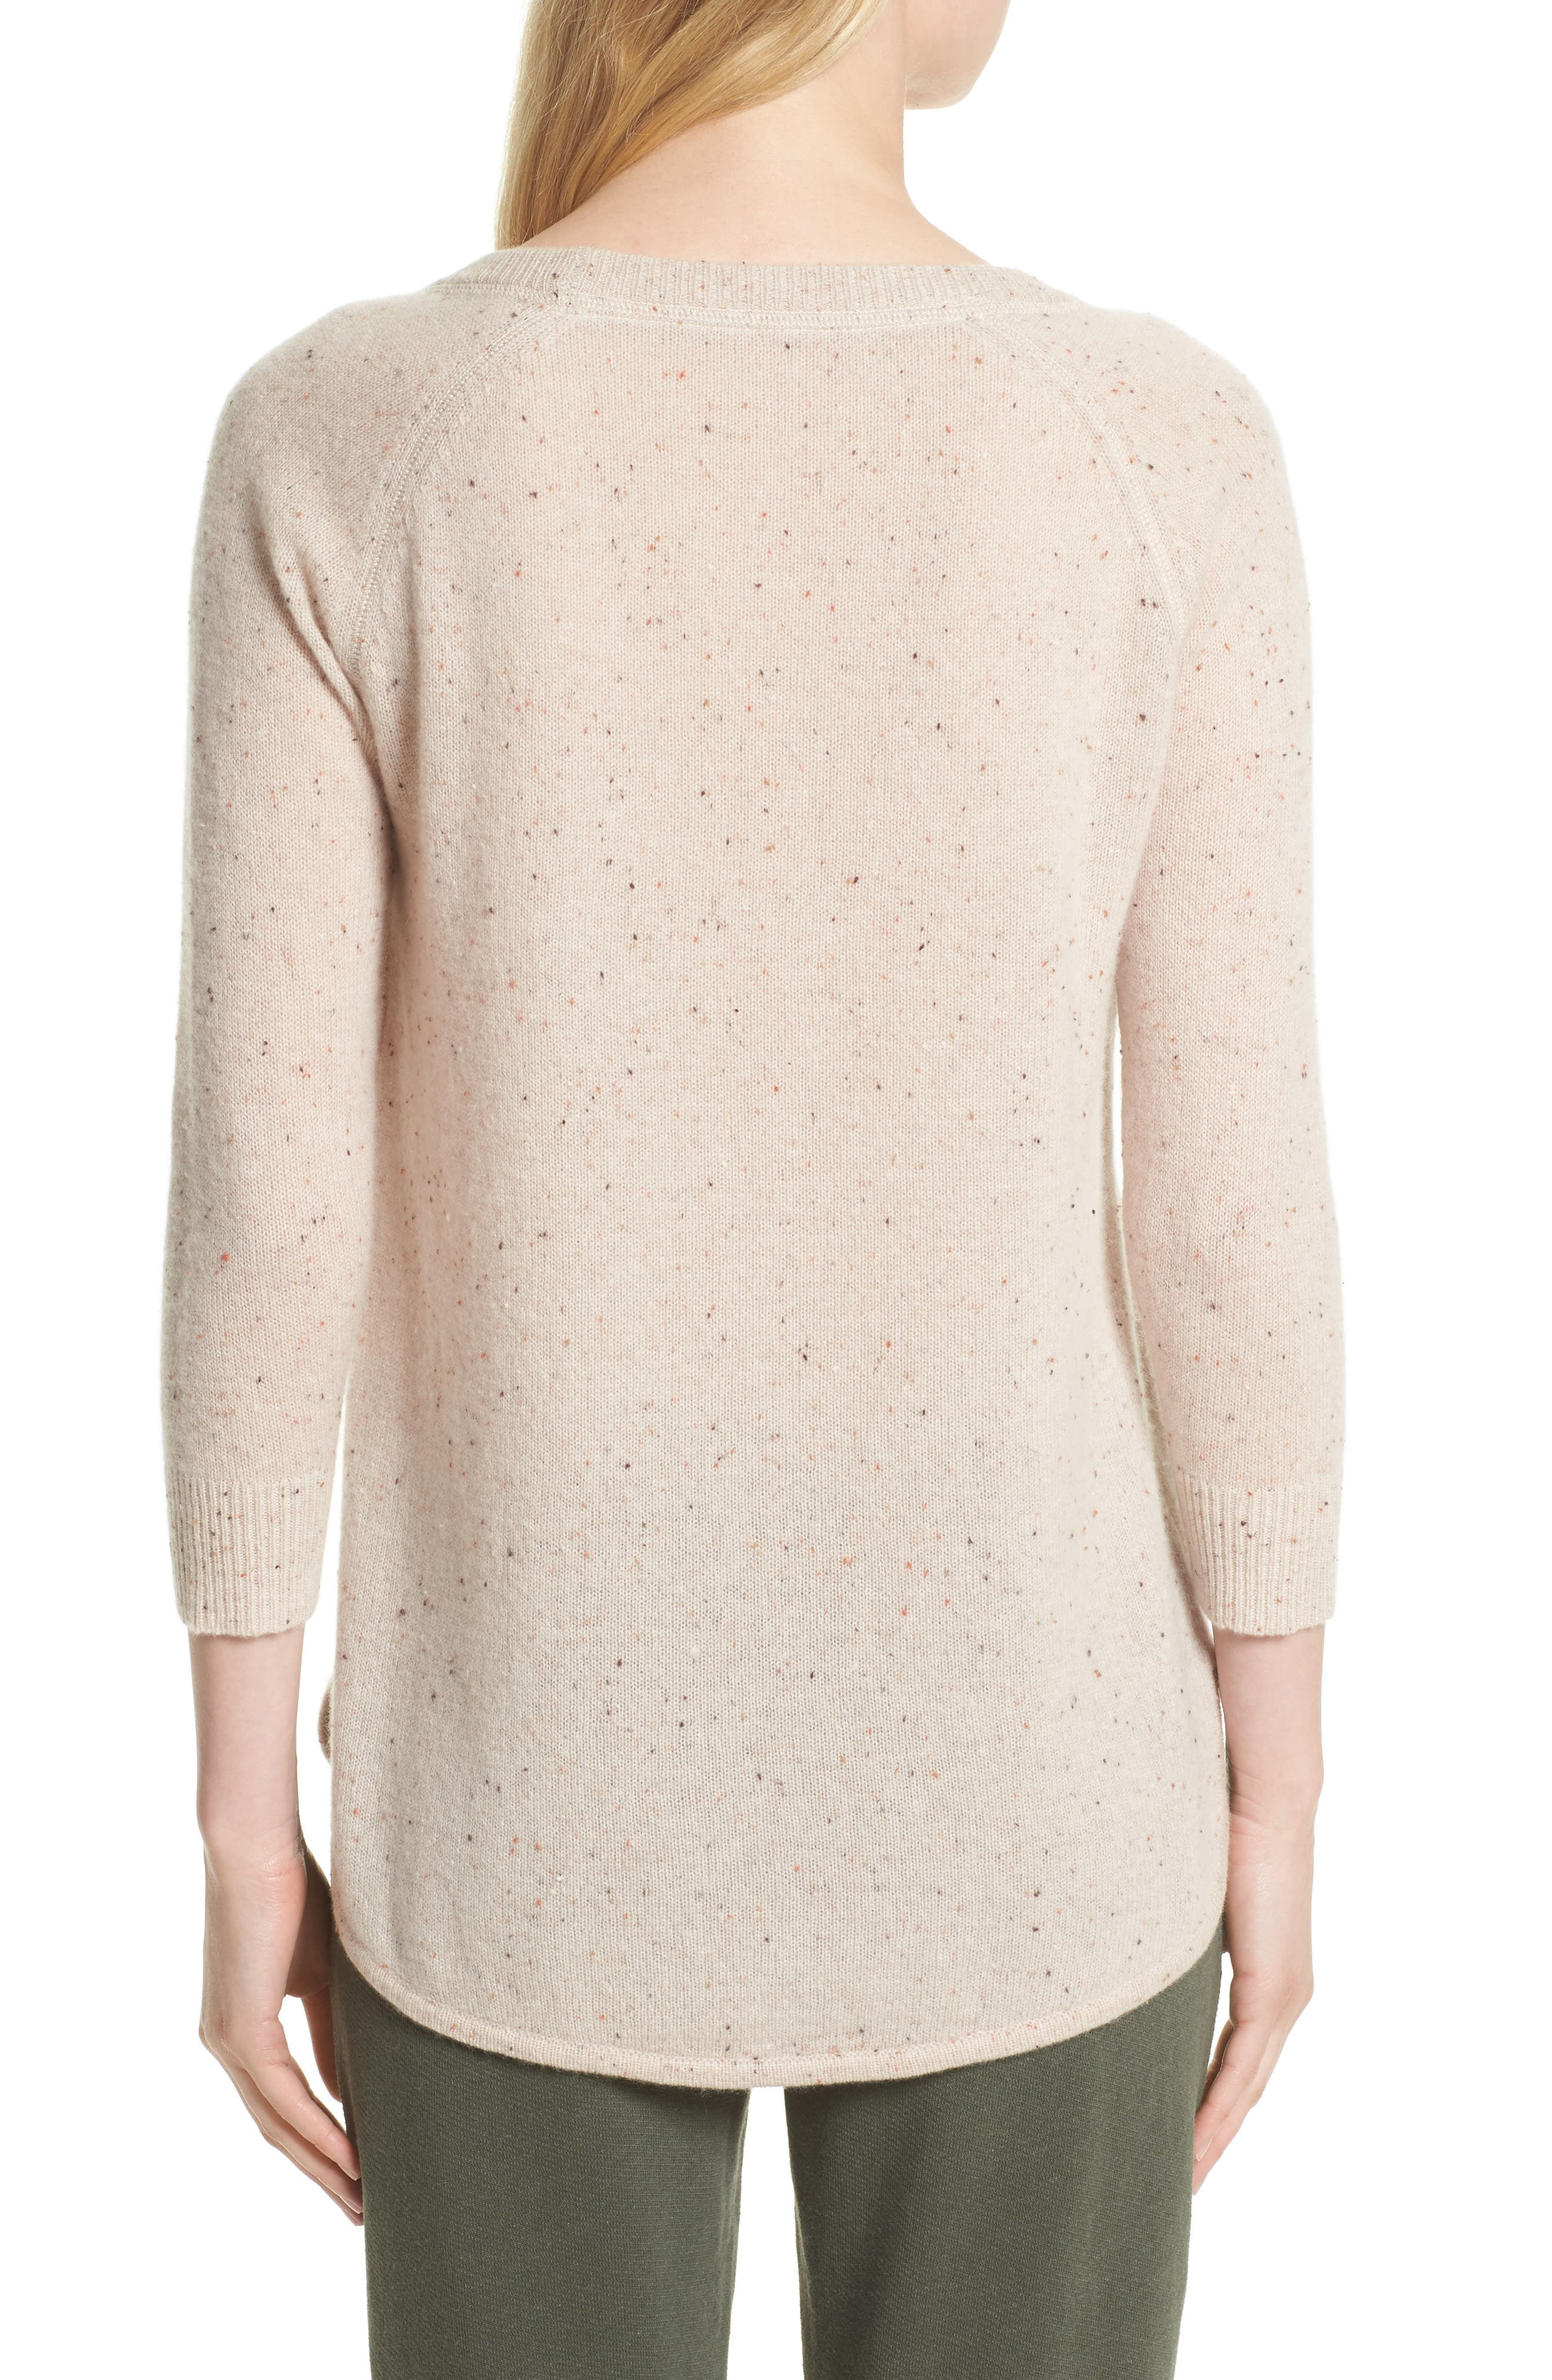 Alternate Image 2  - ATM Anthony Thomas Melillo Cashmere Sweater (Nordstrom Exclusive)